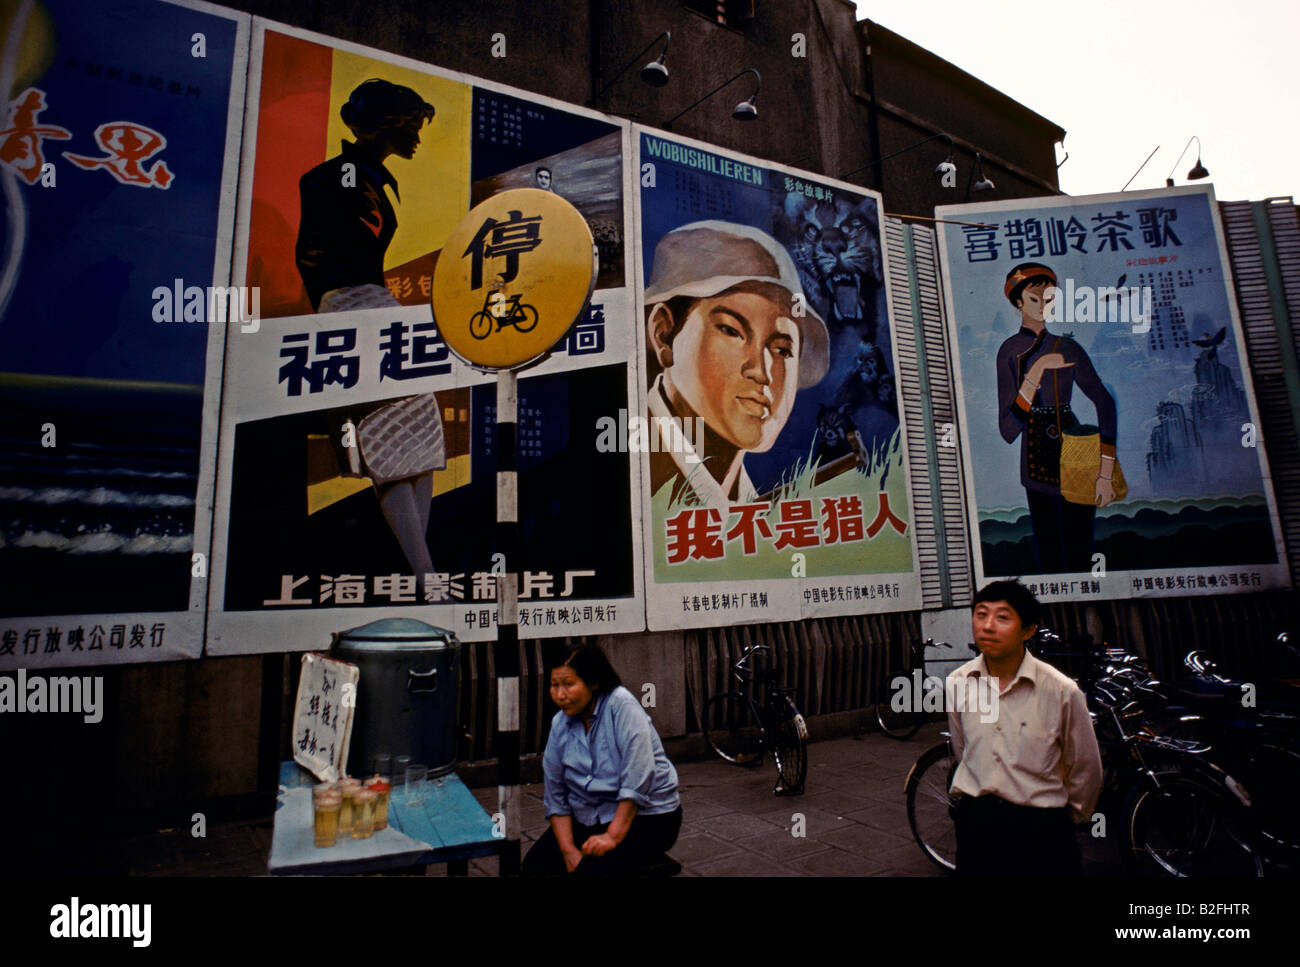 chinese street billboards - Stock Image